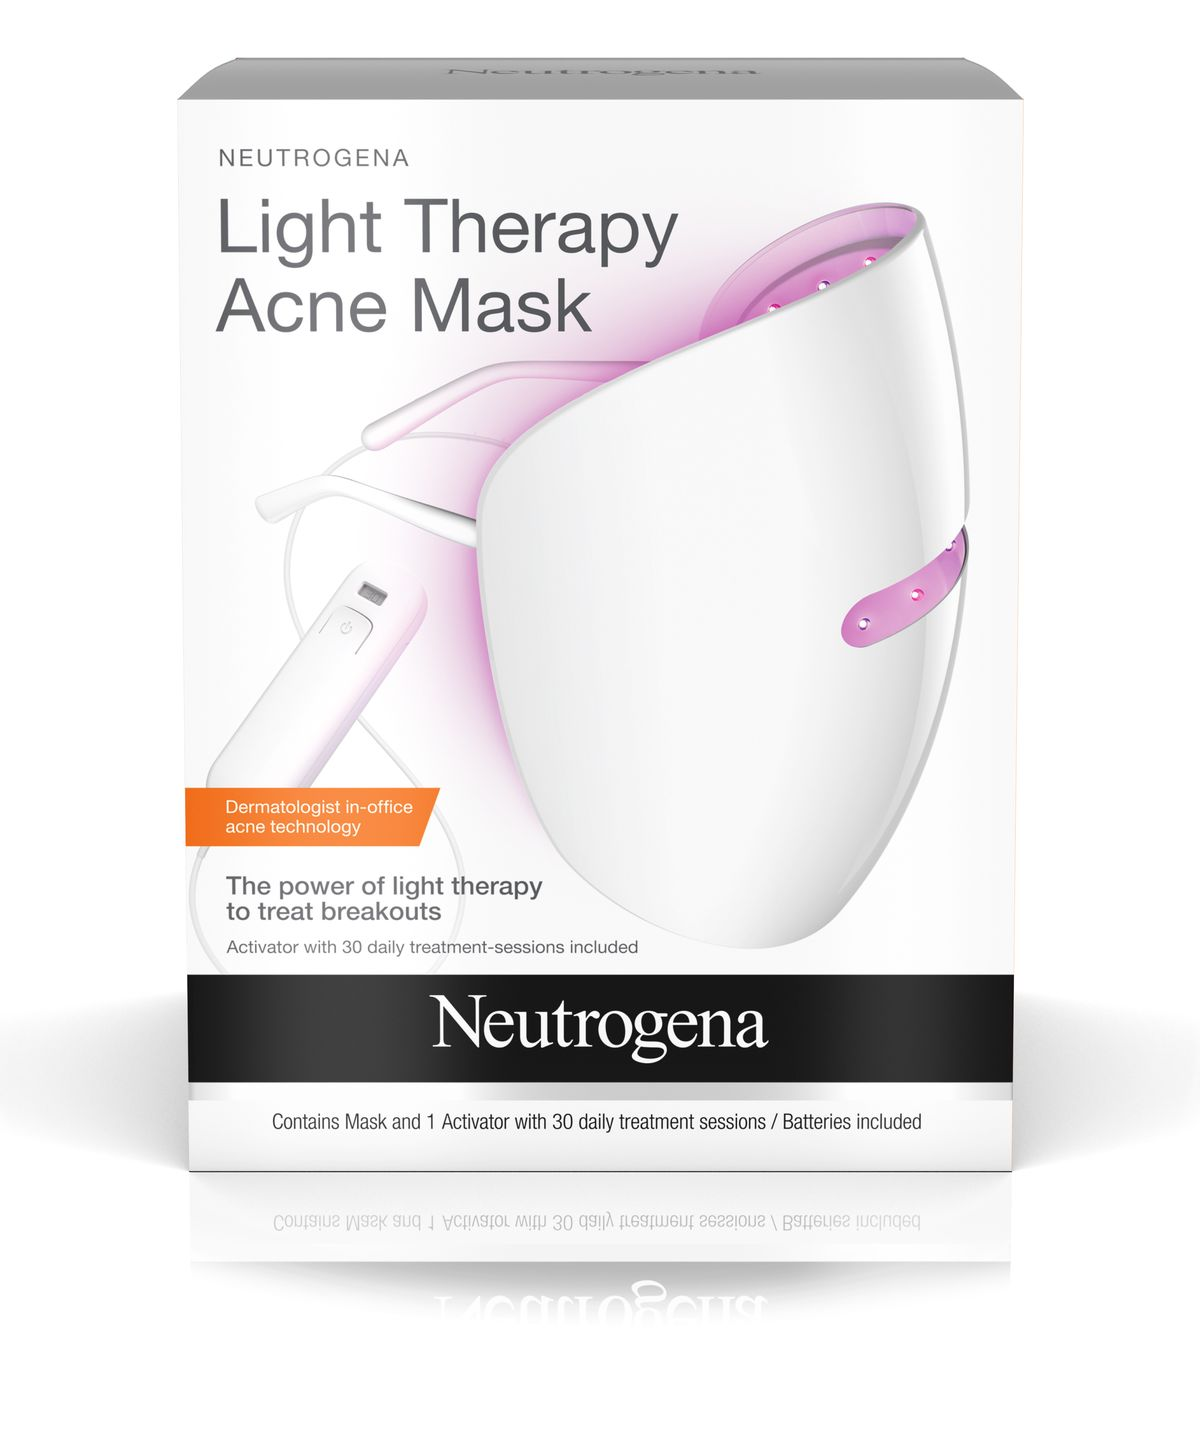 - Neutrogena Light Therapy Mask Not Working?